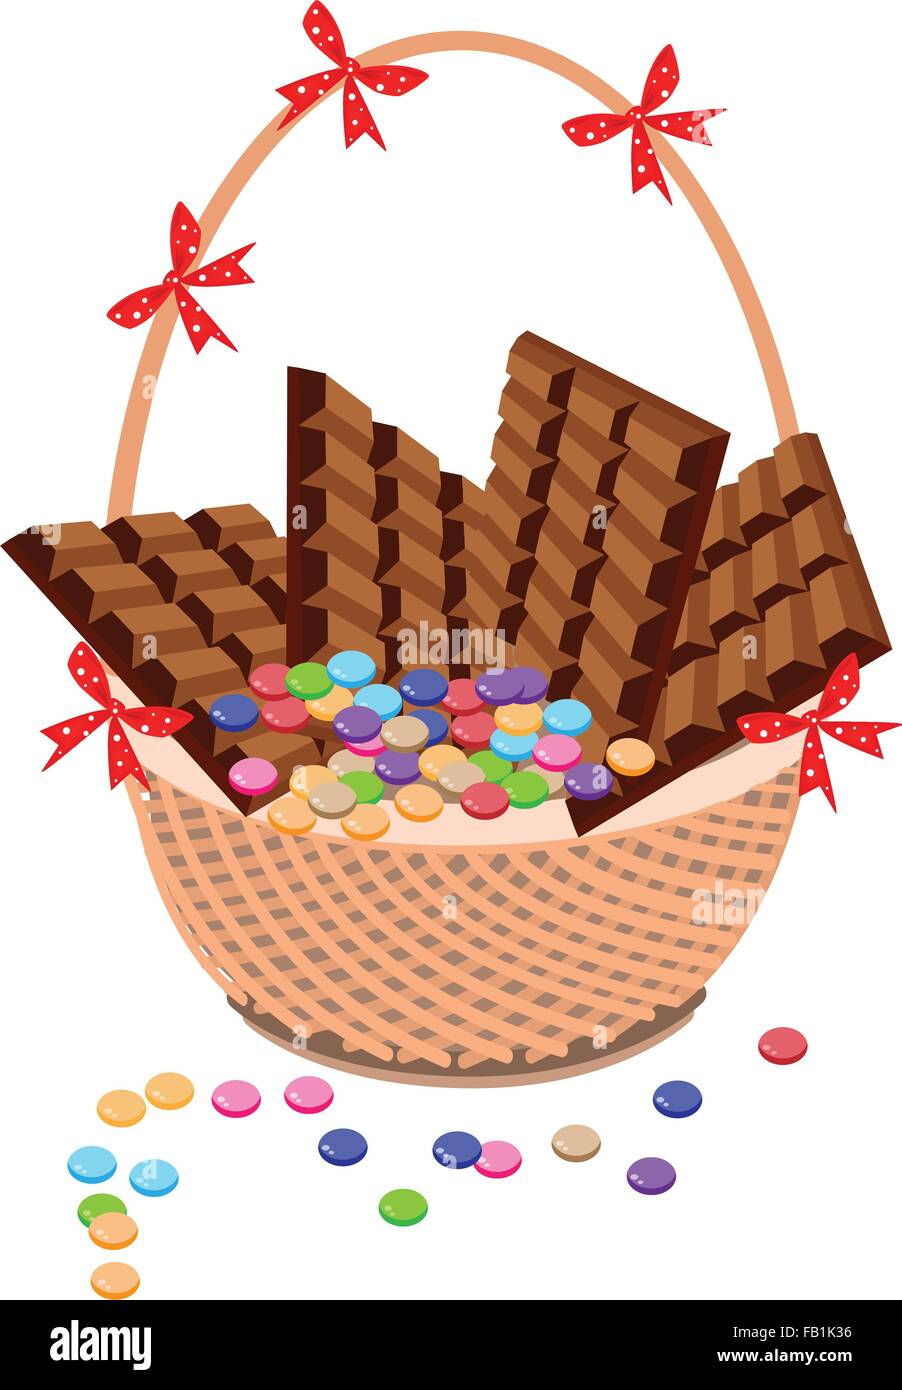 Sweet Food Illustration Of Of Milk Chocolate And Chocolates Bar On